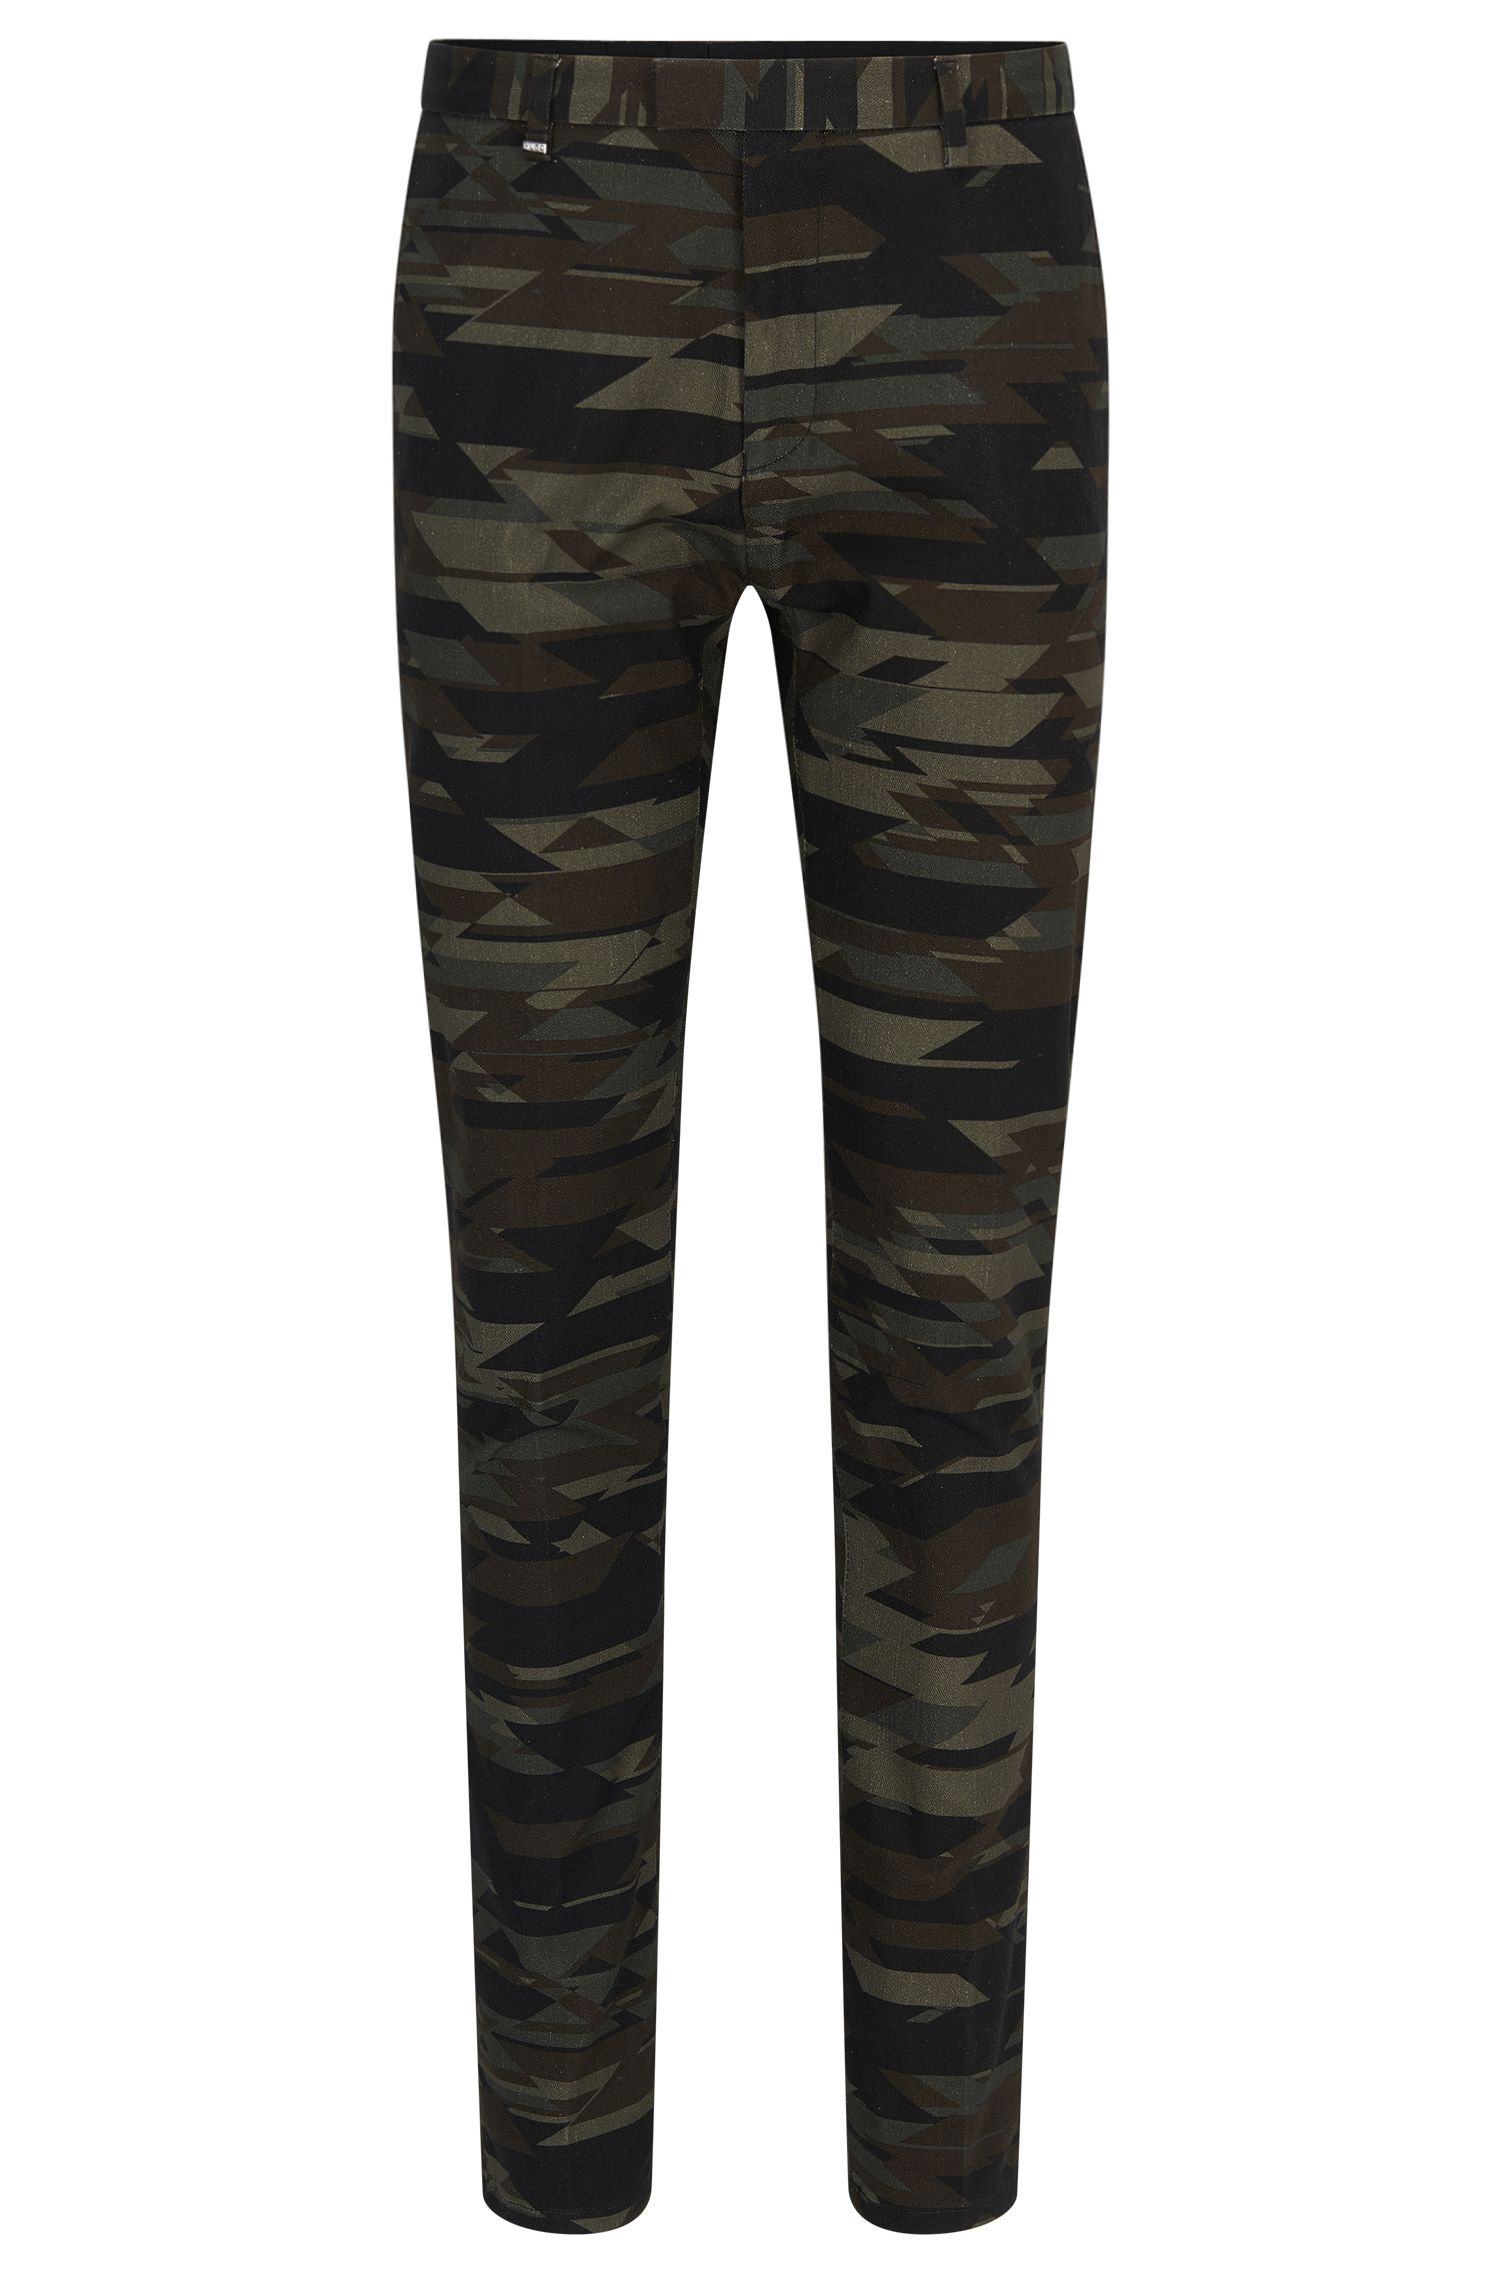 Pantalon Tapered Fit camouflage en sergé de coton stretch